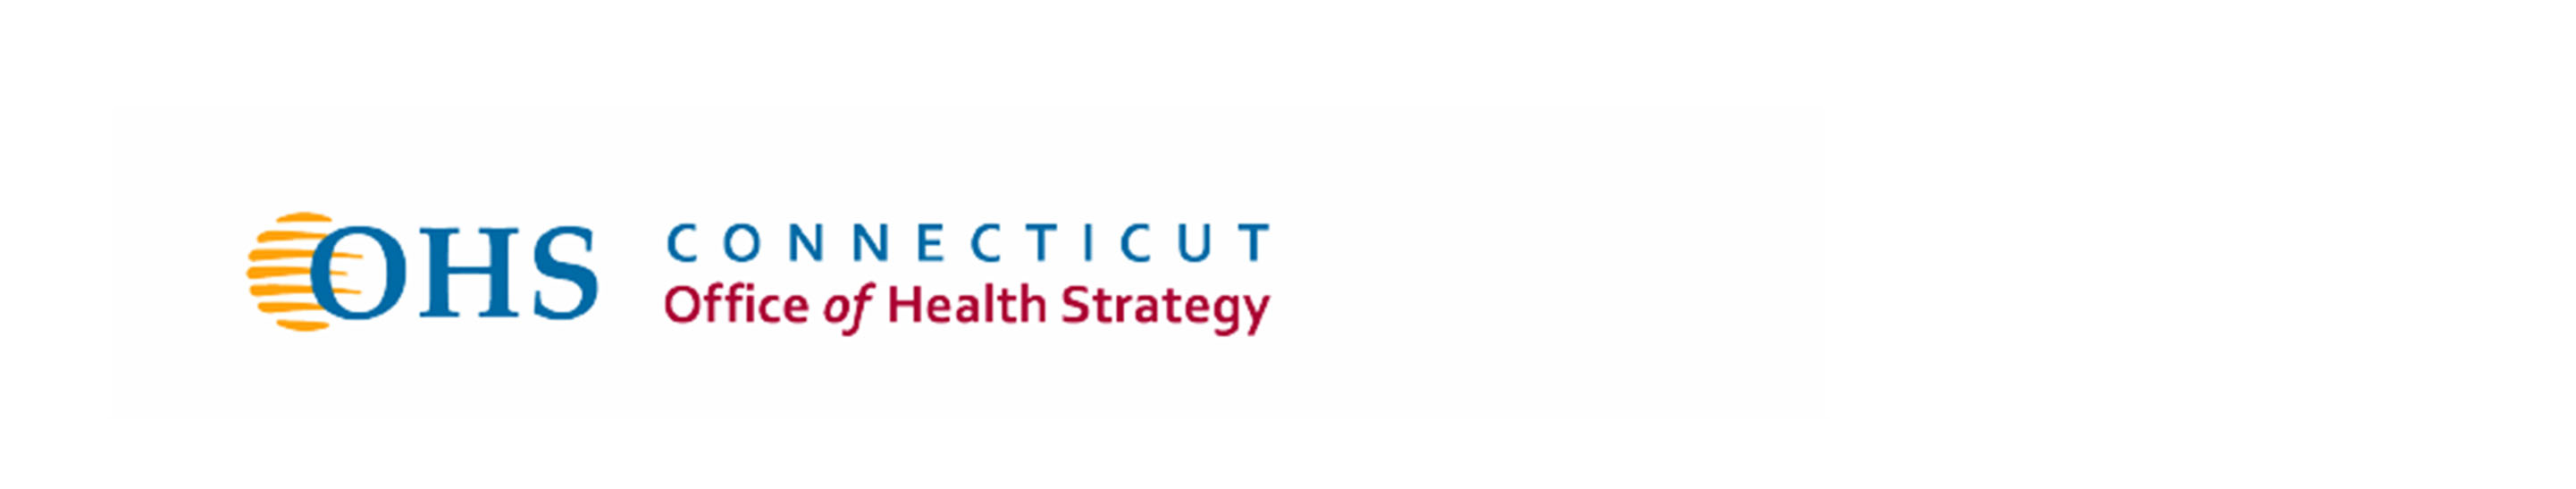 CT Office of Health Strategy logo